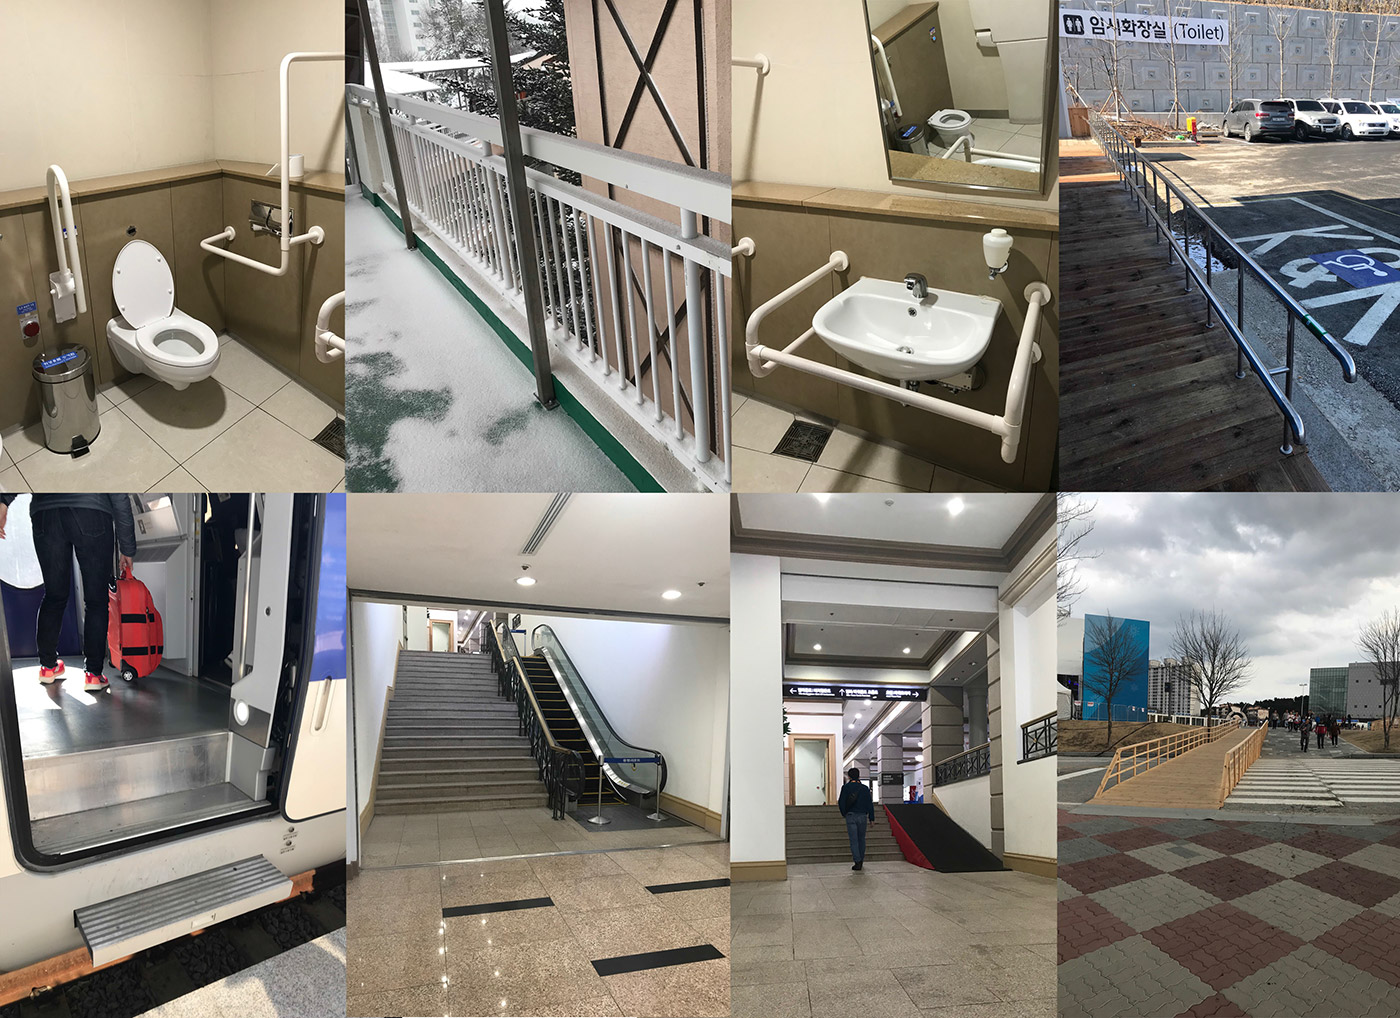 PyeongChang Paralympics 2018 Photo Montage 9 - Room for Improvement